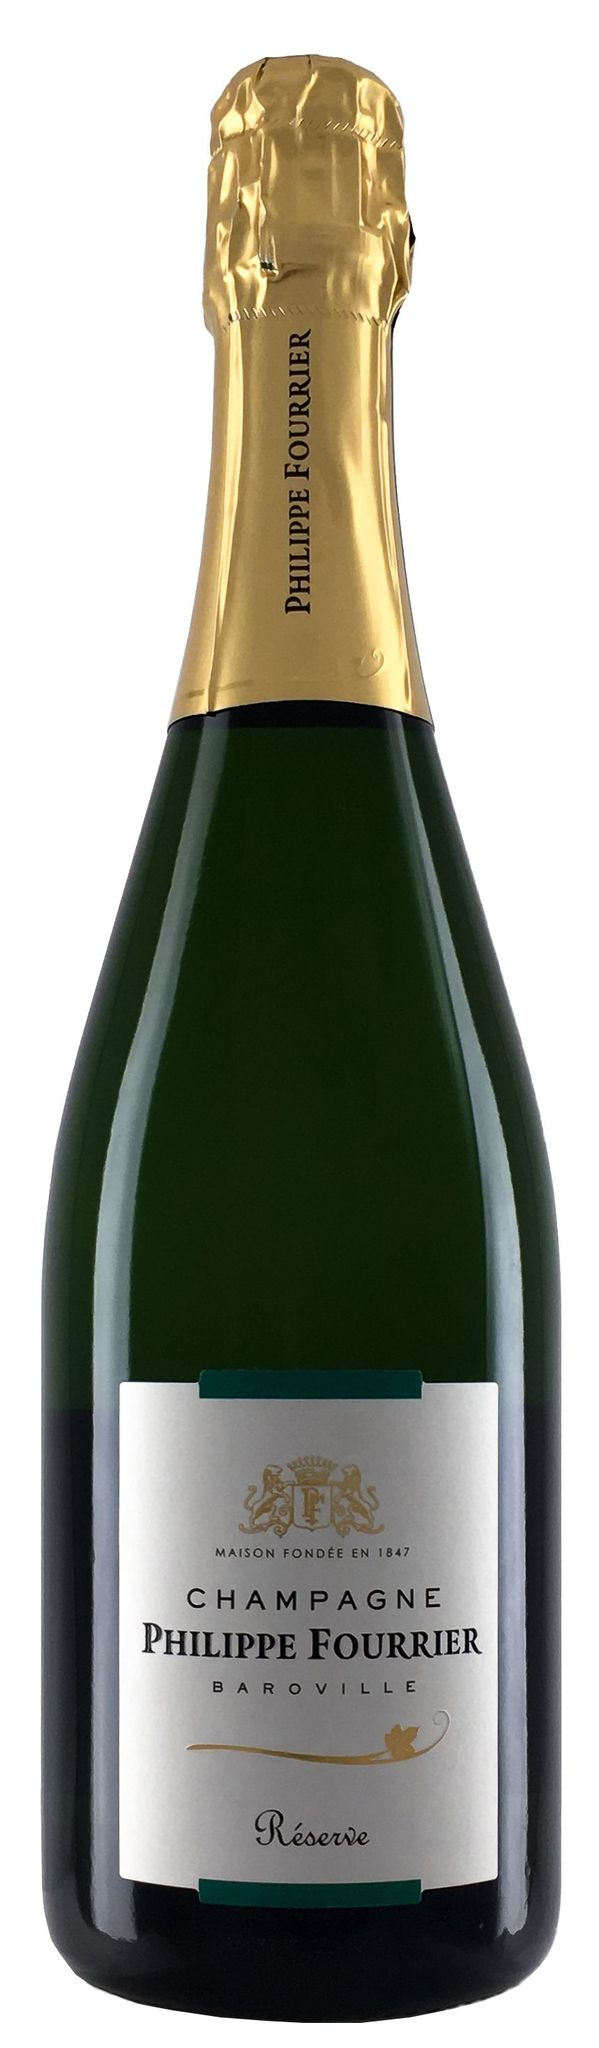 Philippe Fourrier Reserve Champagne 0.375л